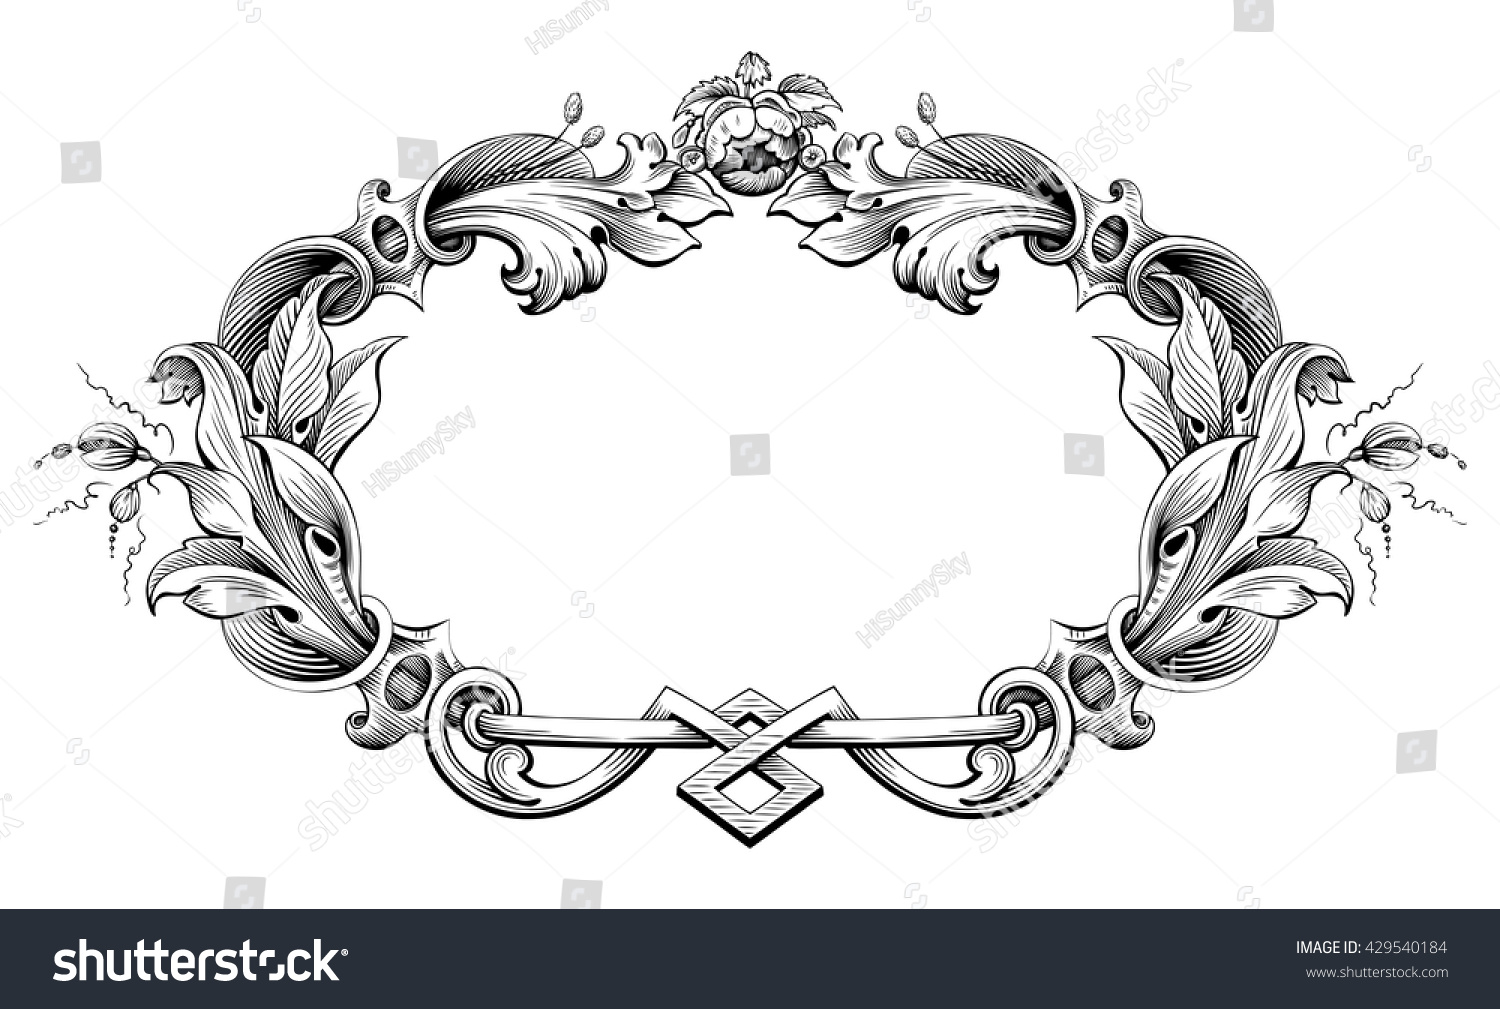 vintage baroque victorian frame border monogram floral ornament leaf scroll engraved retro flower pattern decorative design